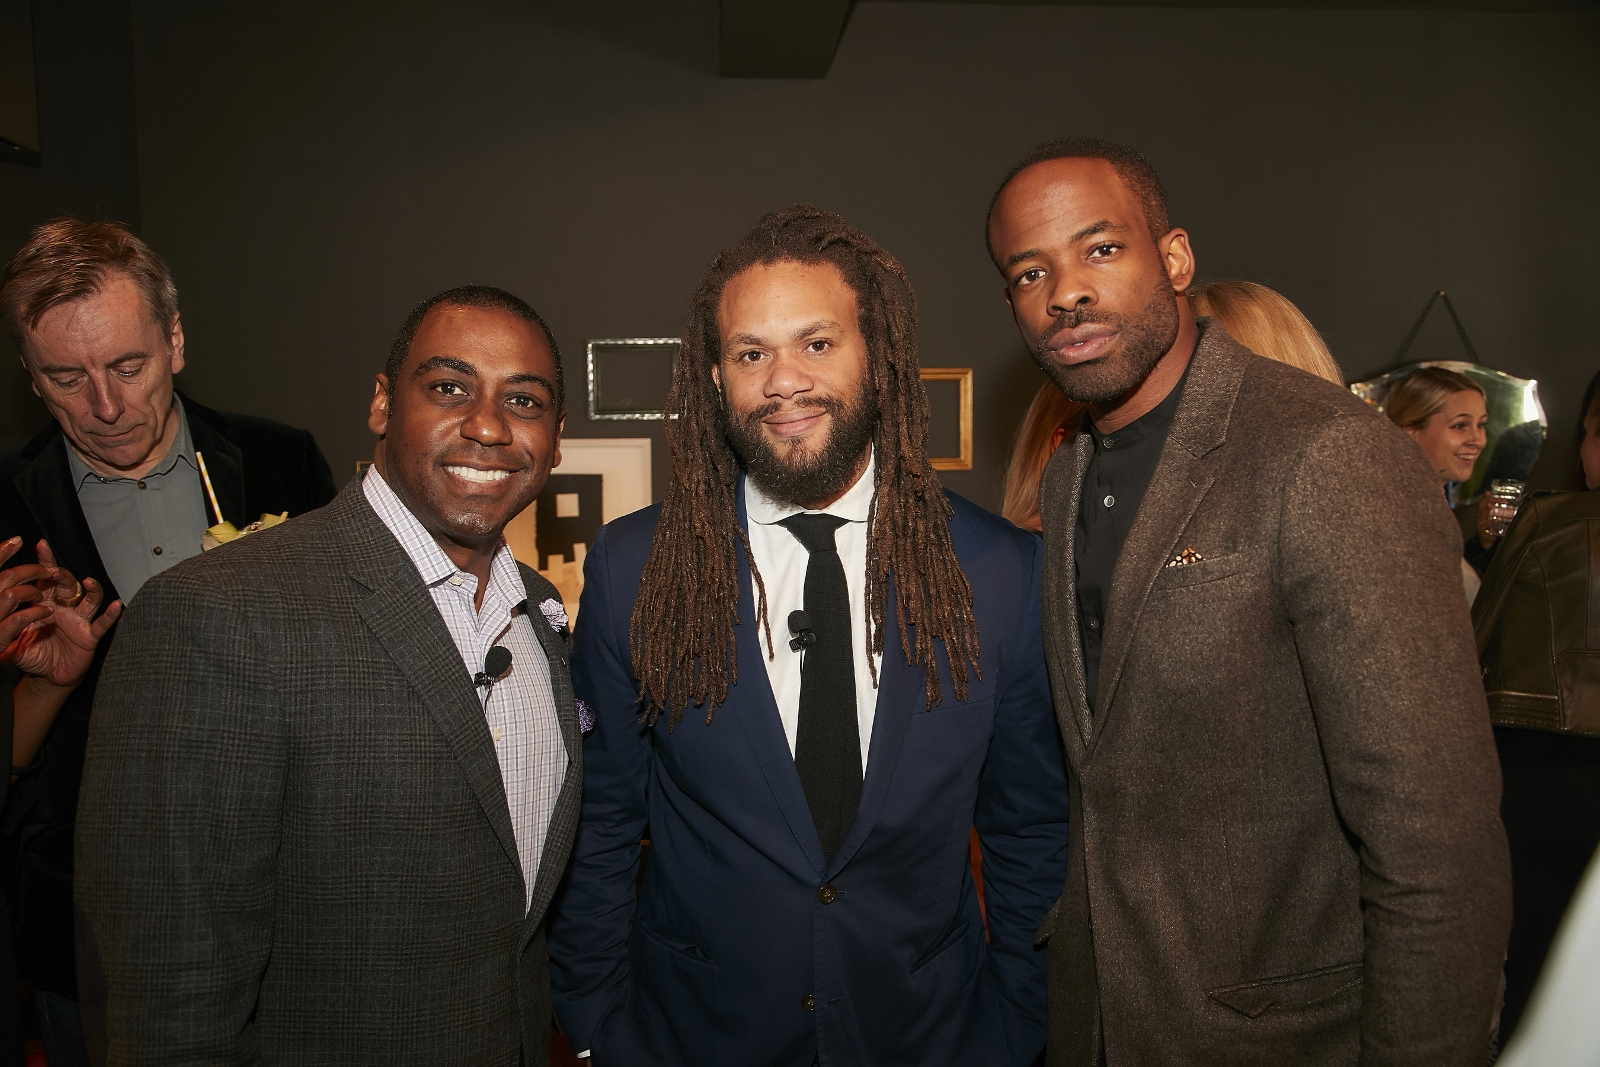 Autograph Collection Hotels Launches Unprecedented Cultural Program Focusing On Independent Film. Pictured: Julius Robinson, Franklin Leonard, and Chike Okonkwo at Autograph Collection's The Black List Luncheon in London